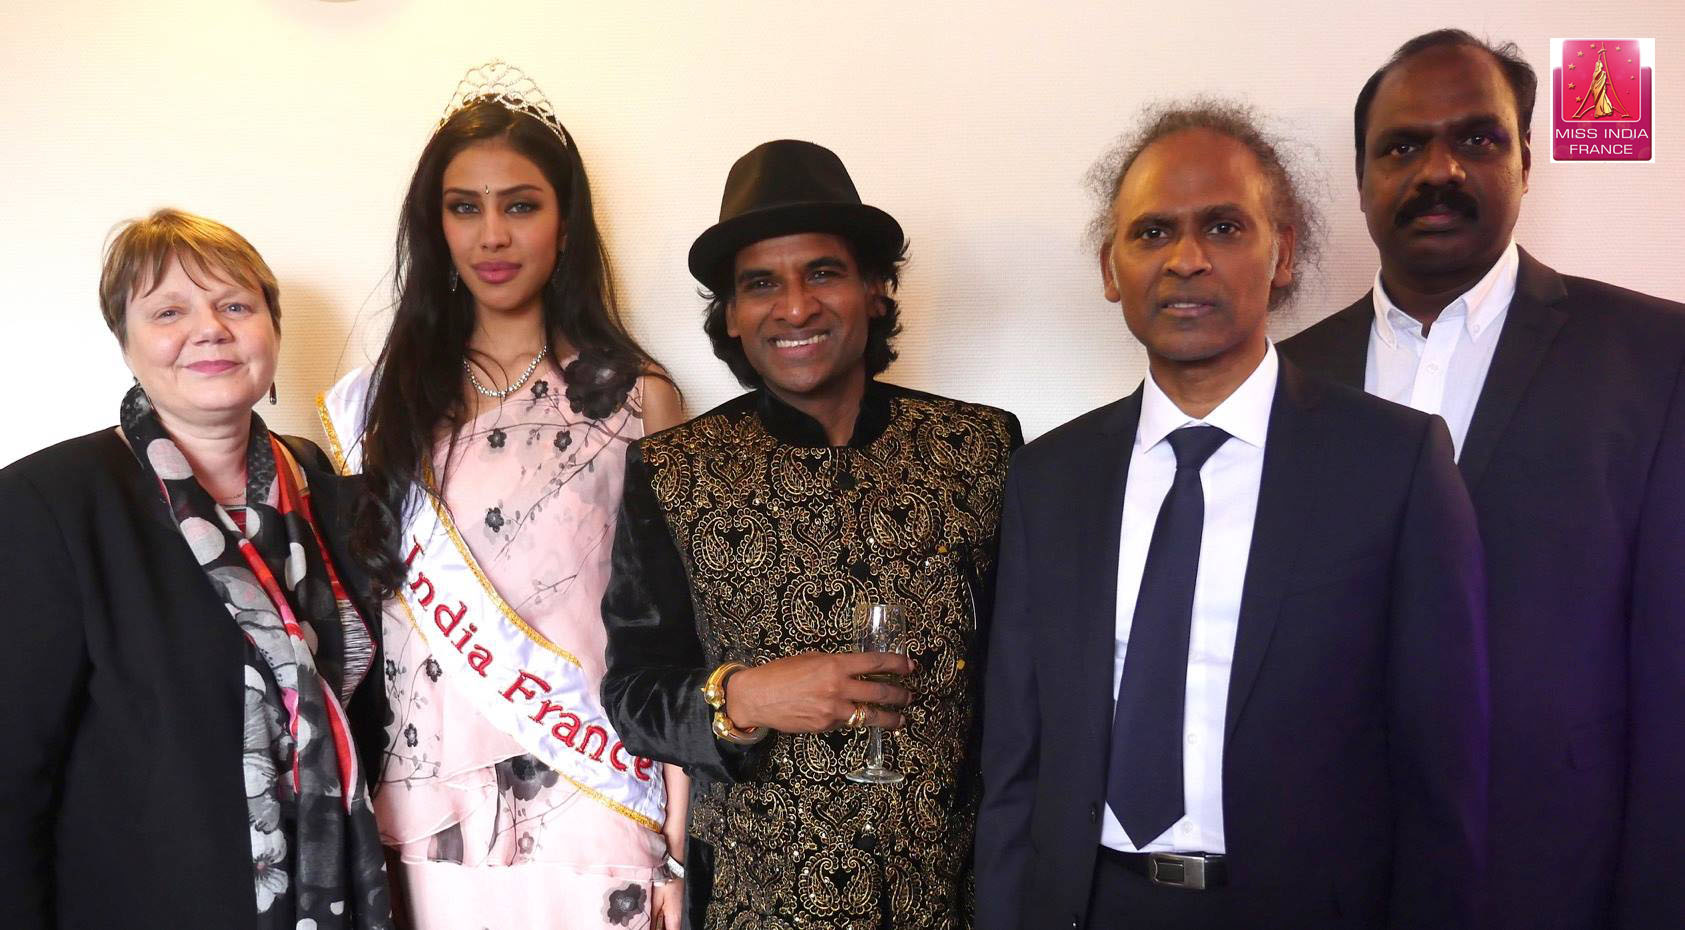 Miss India France avec Ragunath malai